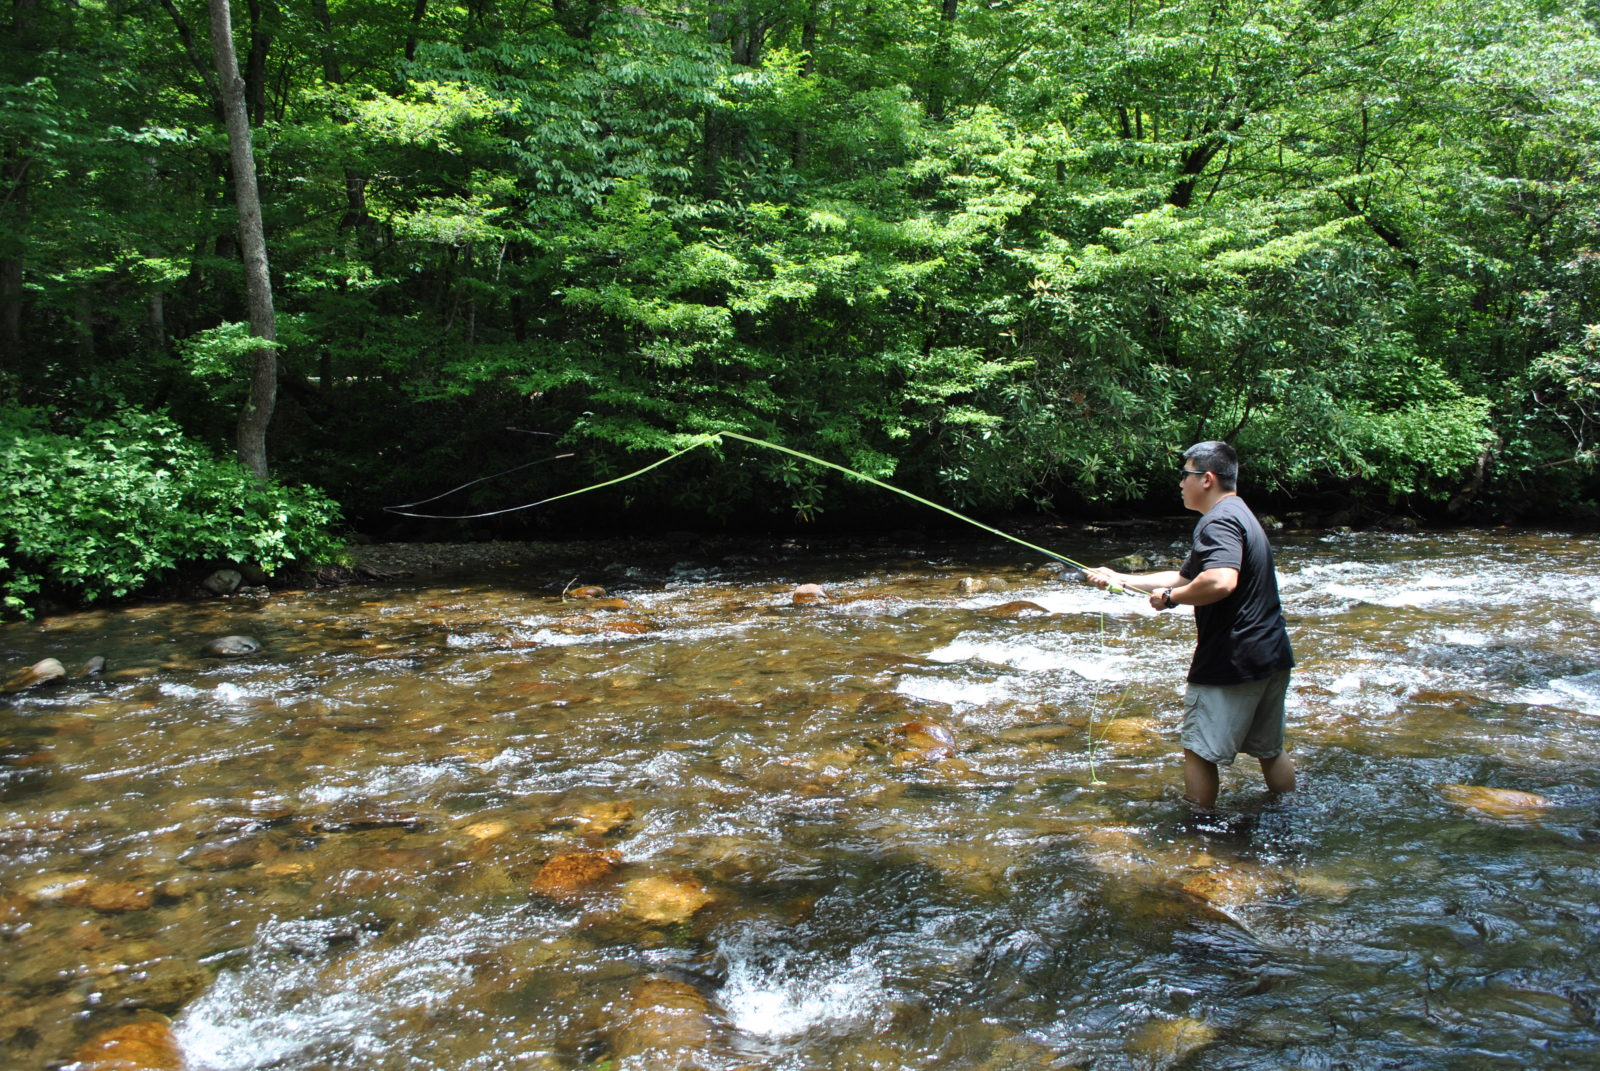 Photo gallery guided fly fishing in cherokee ncguided for Fly fishing cherokee nc